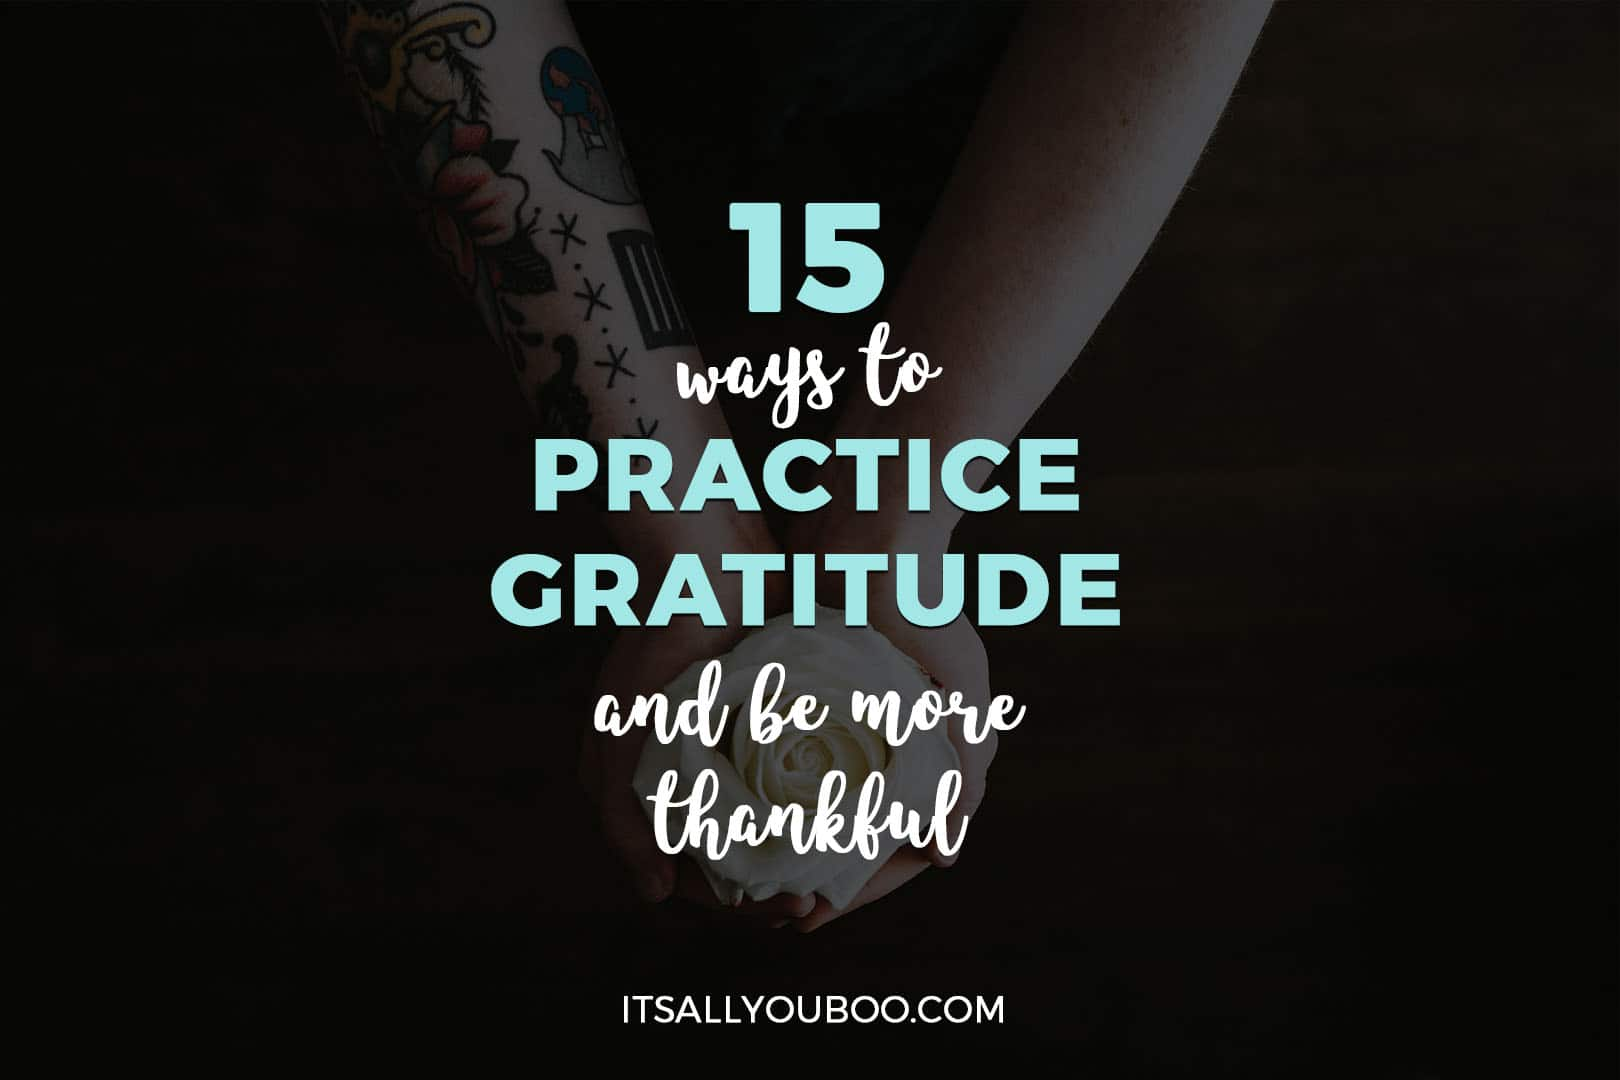 15 Ways to Practice Gratitude and Be More Thankful